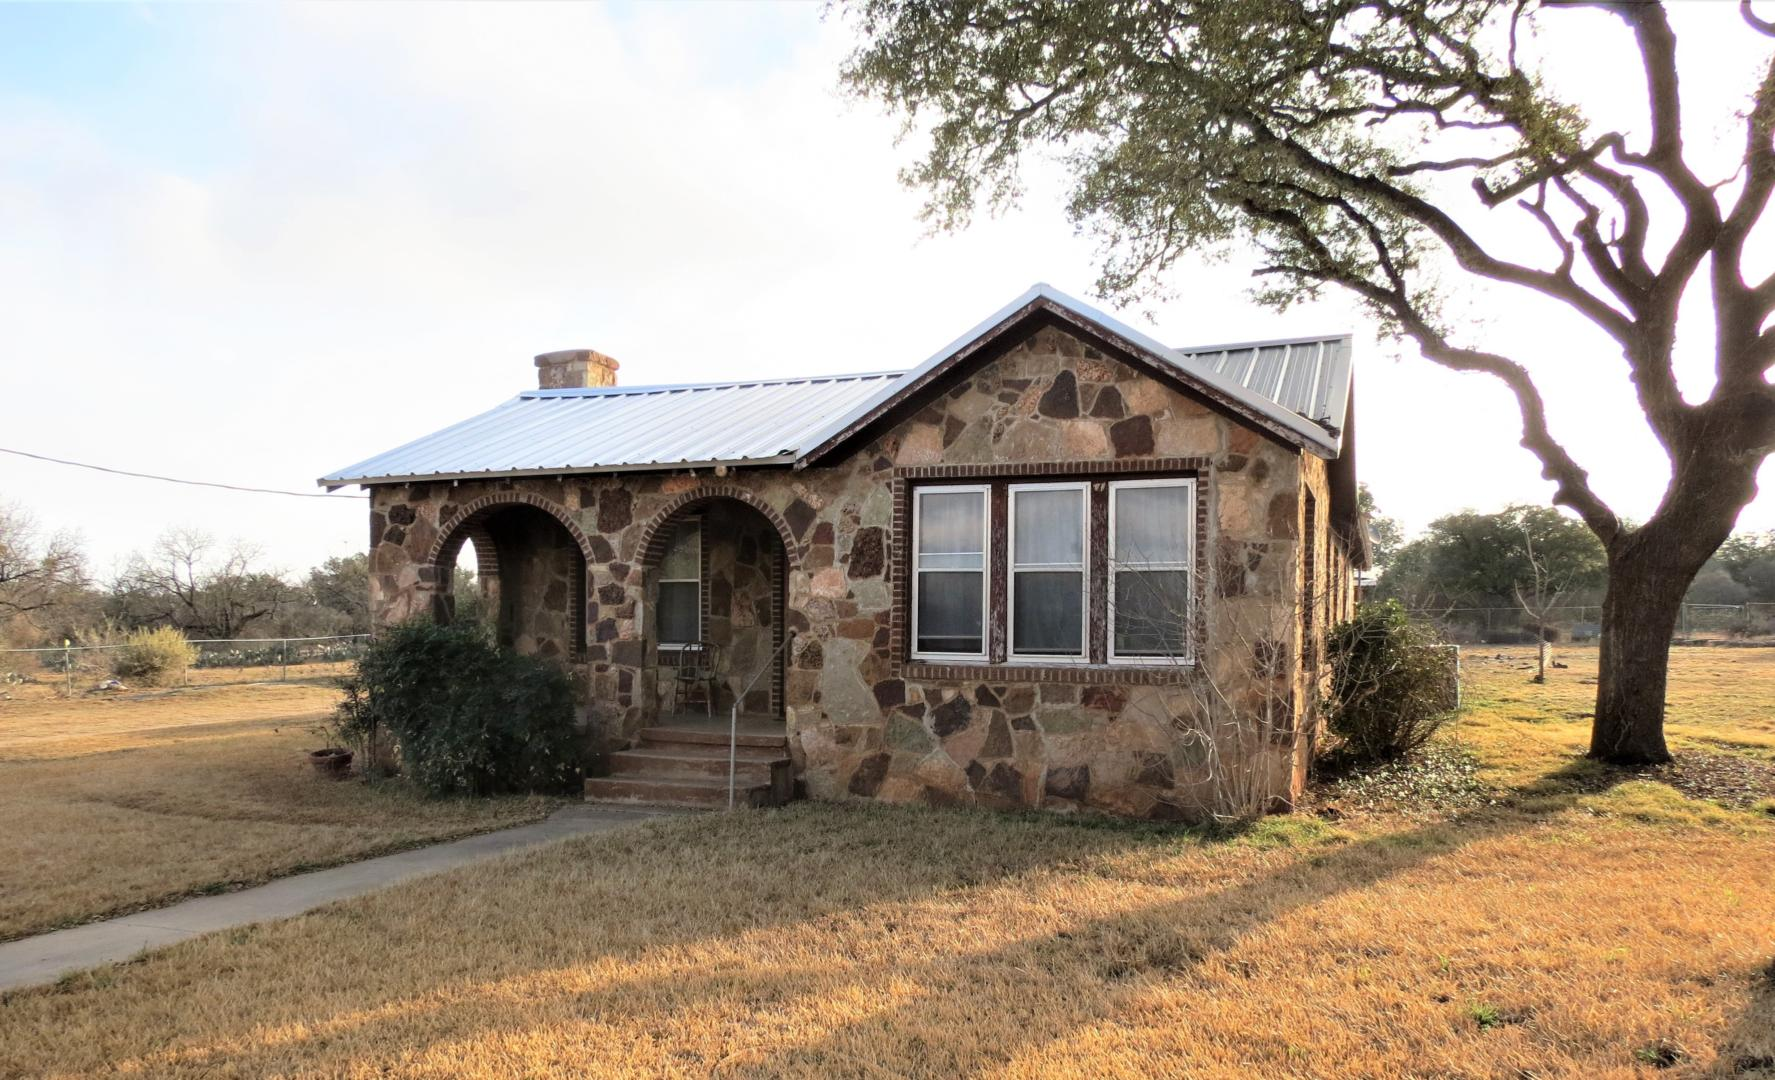 Surprising 15889 Oak St Fredonia Tx Nice 3 2 Renovated Home Nine Download Free Architecture Designs Scobabritishbridgeorg